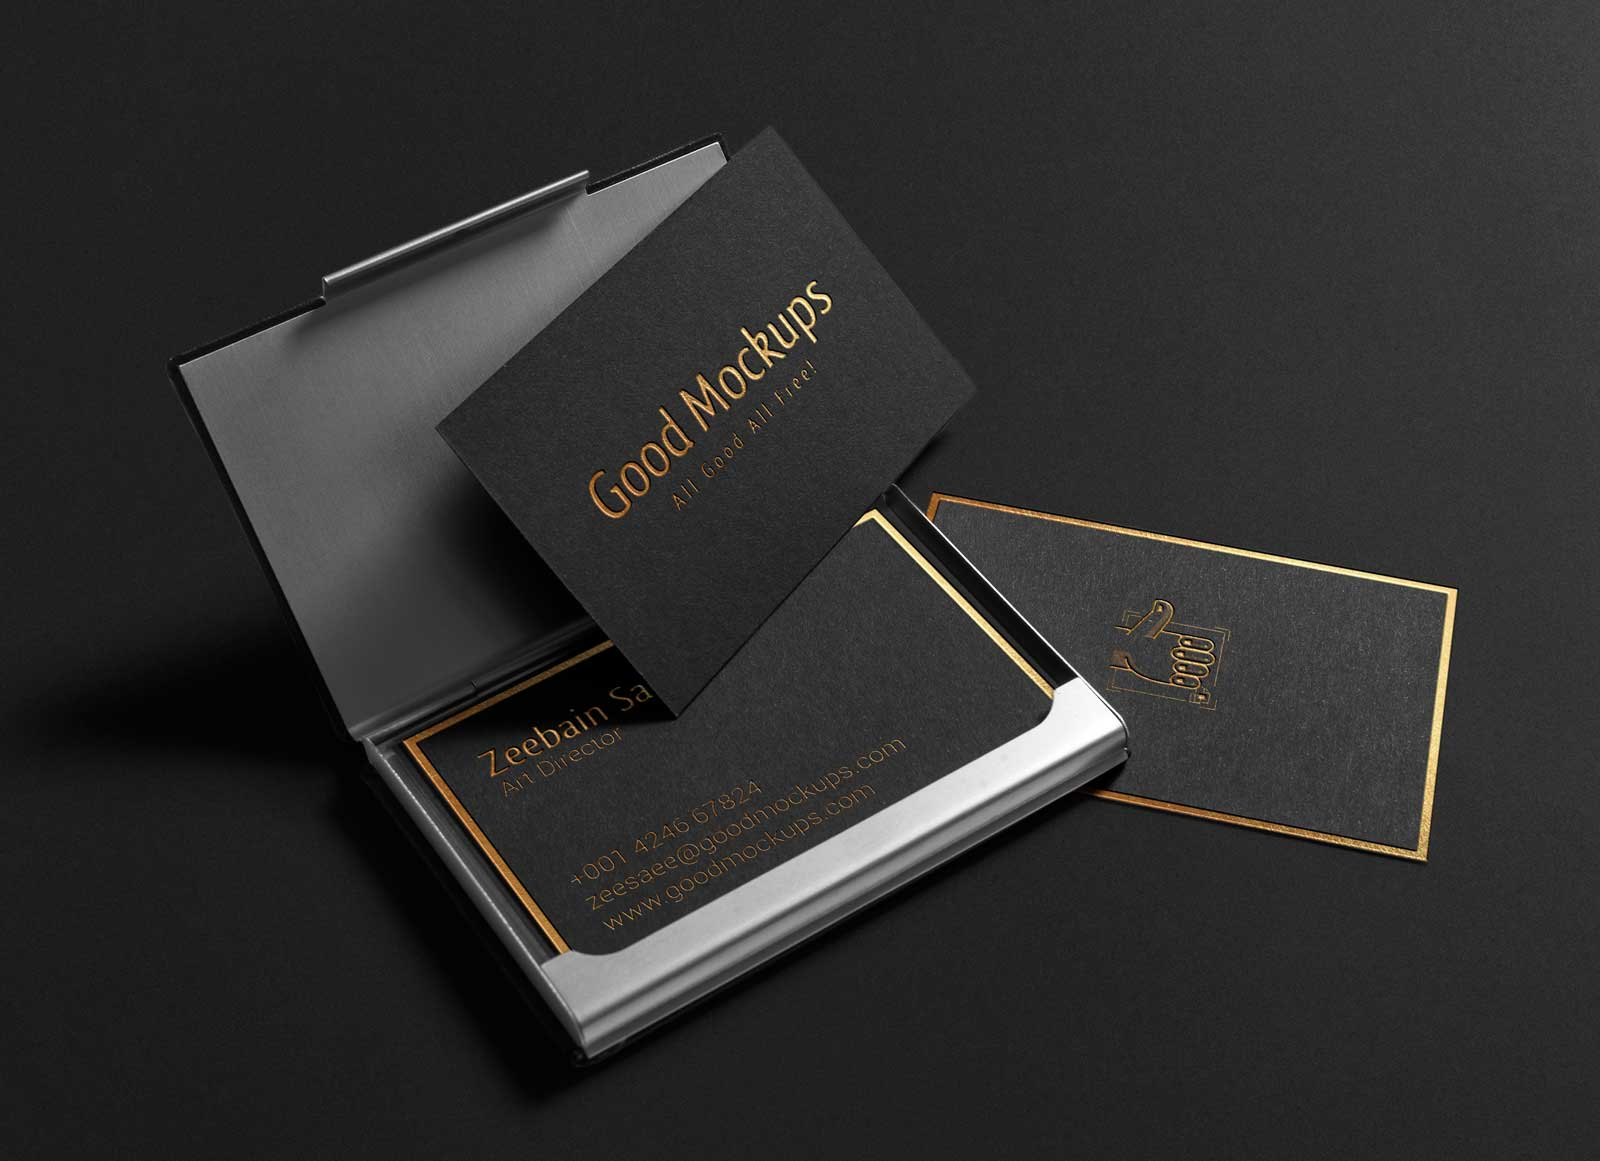 Free black with gold foil lettering business card mockup psd good free black business card mockup psd reheart